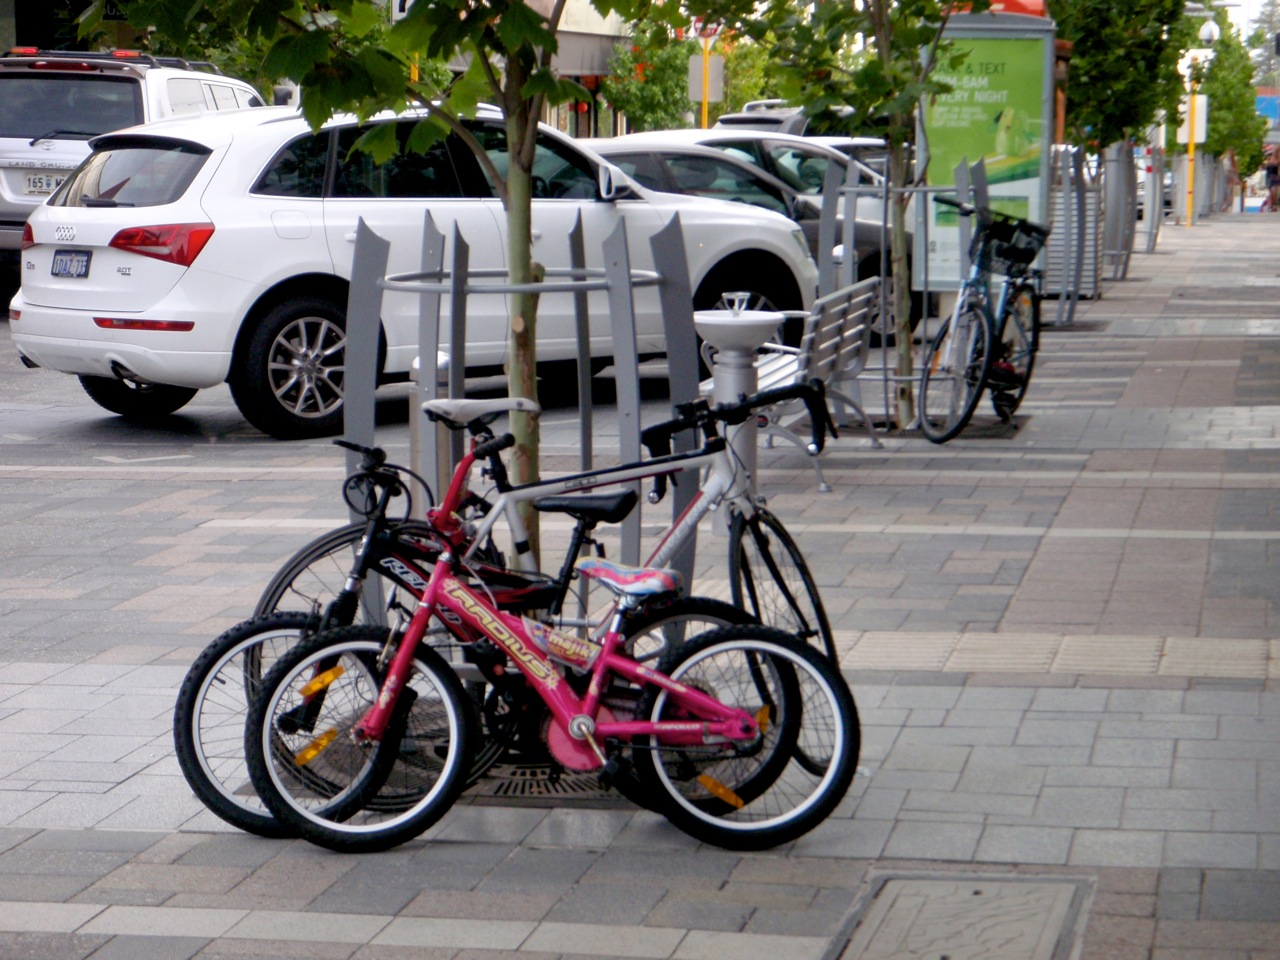 Town of Claremont Shared Space Bicycle Parking